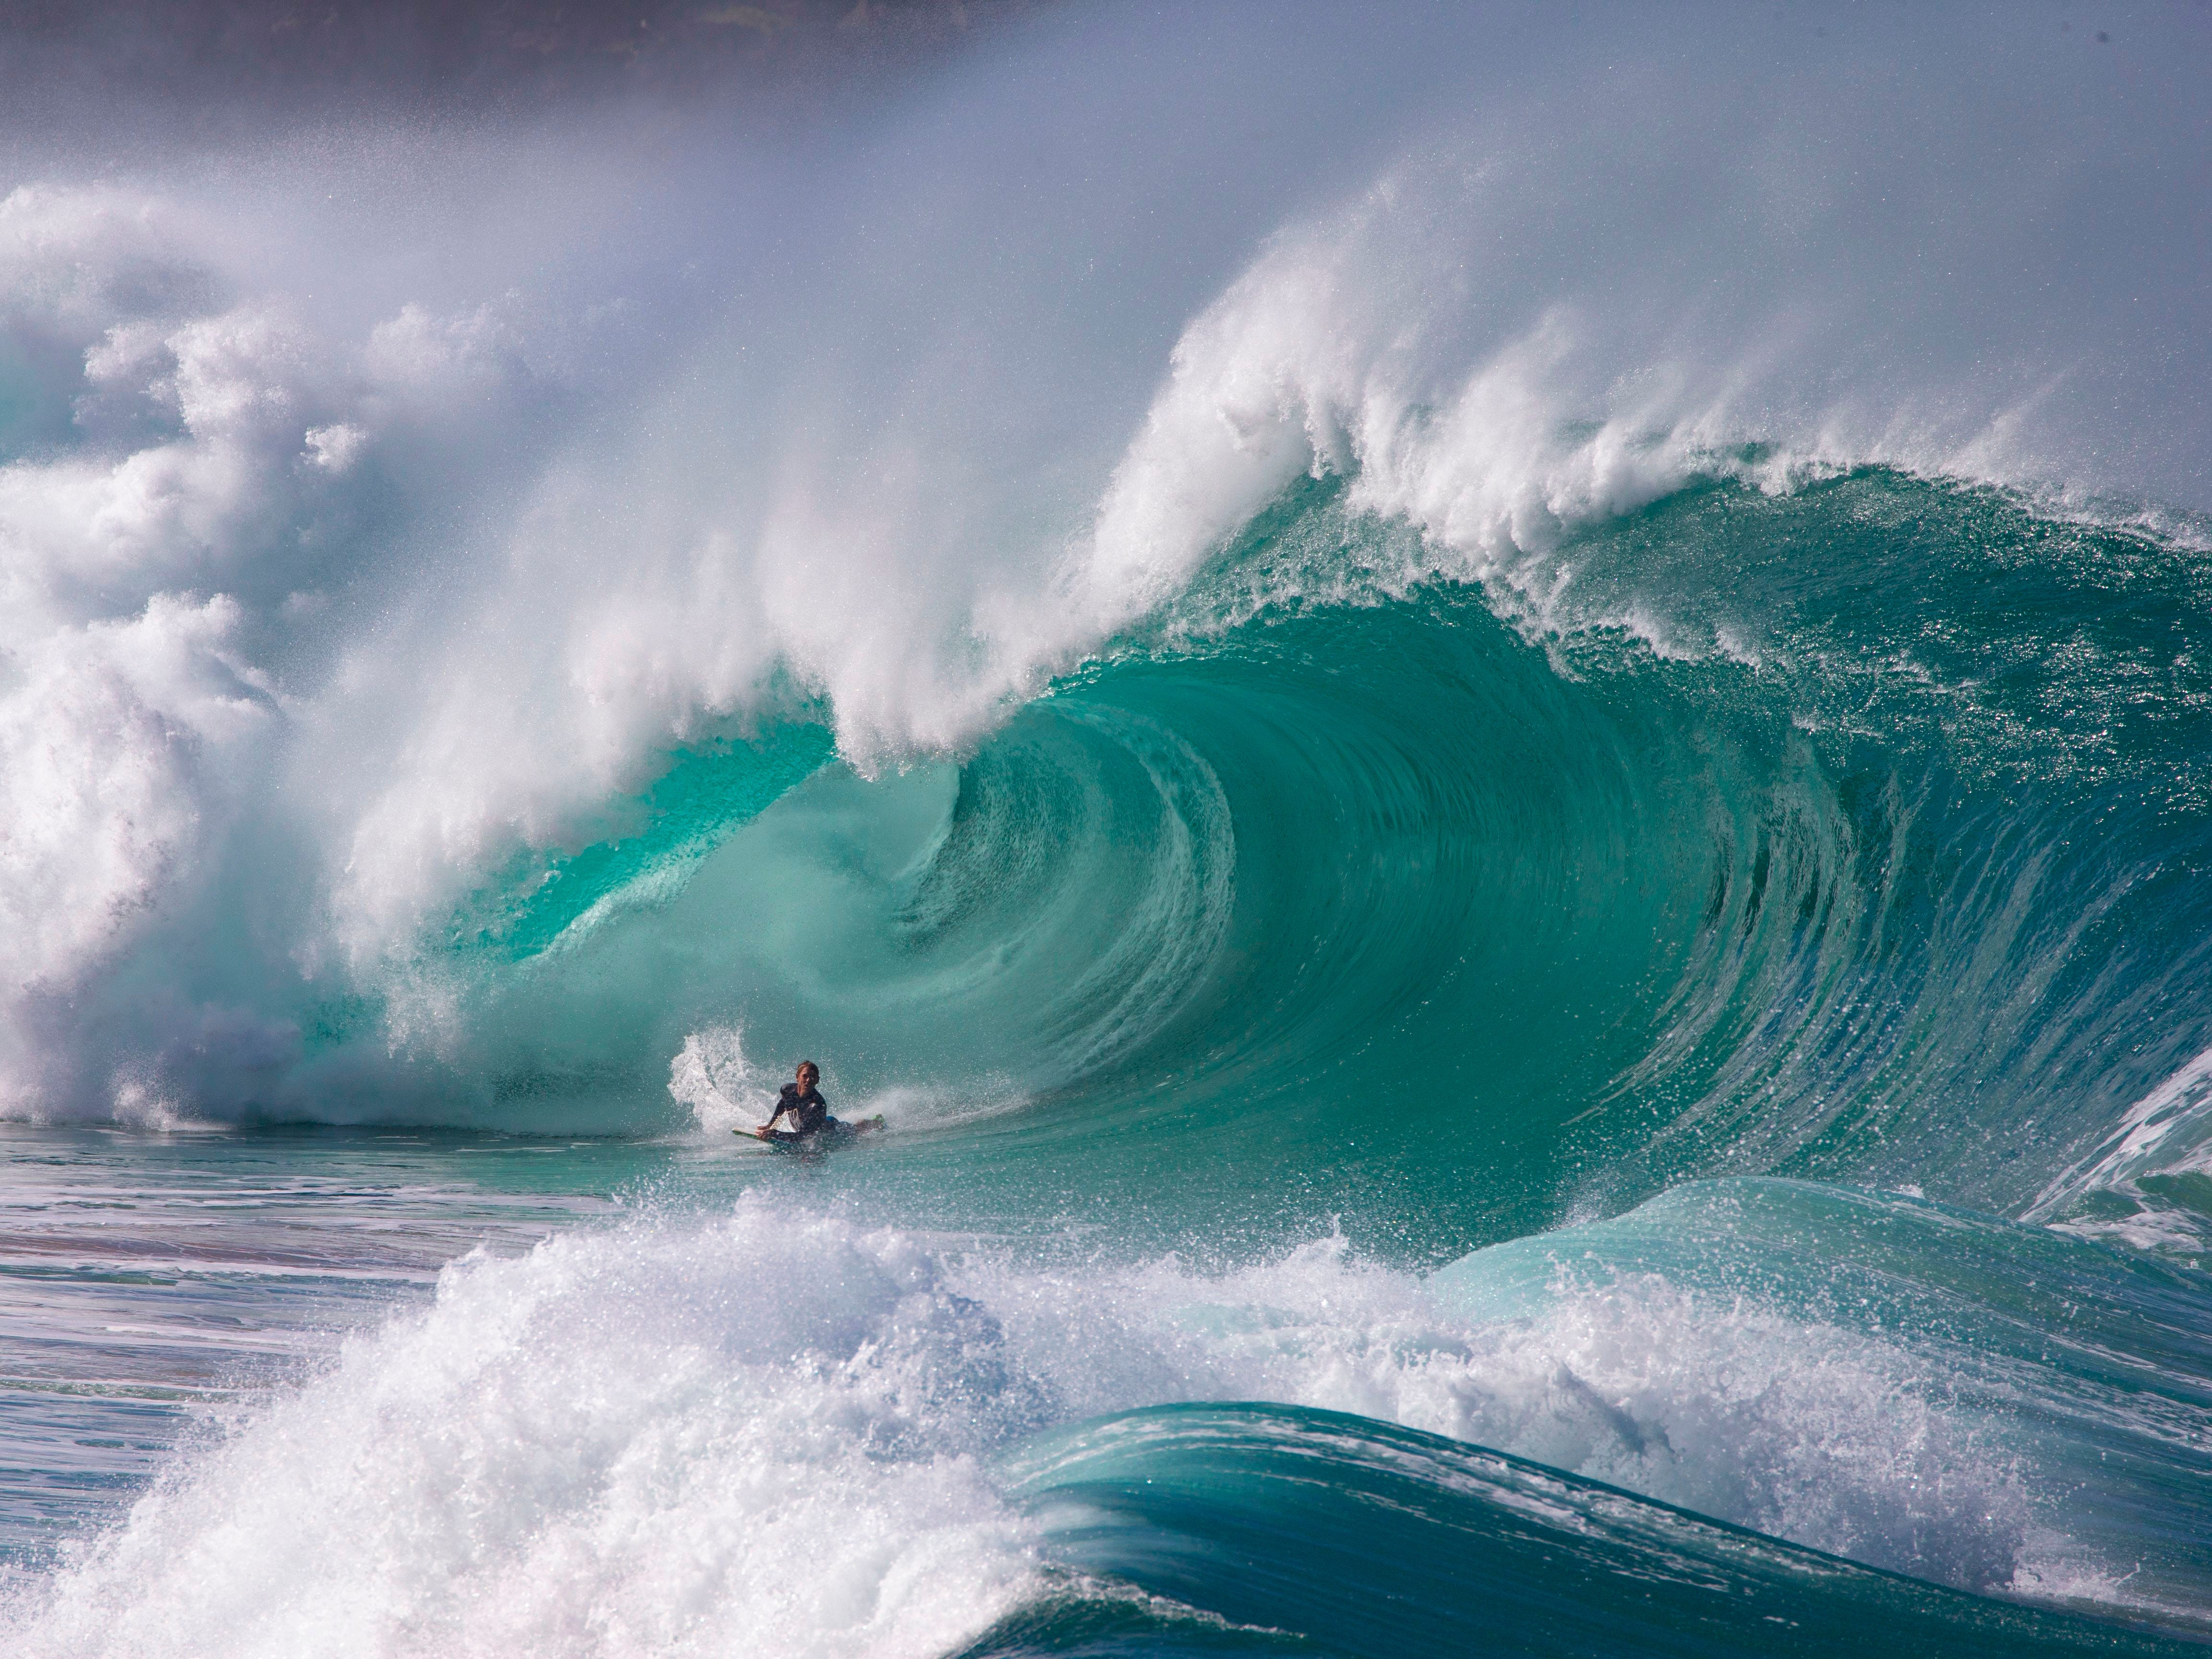 Pro surfer Kalani Chapman rides the Banzai Pipeline ahead of the Billabong Pipe Masters on the north shore of Oahu in Hawaii on Dec. 6, 2018.